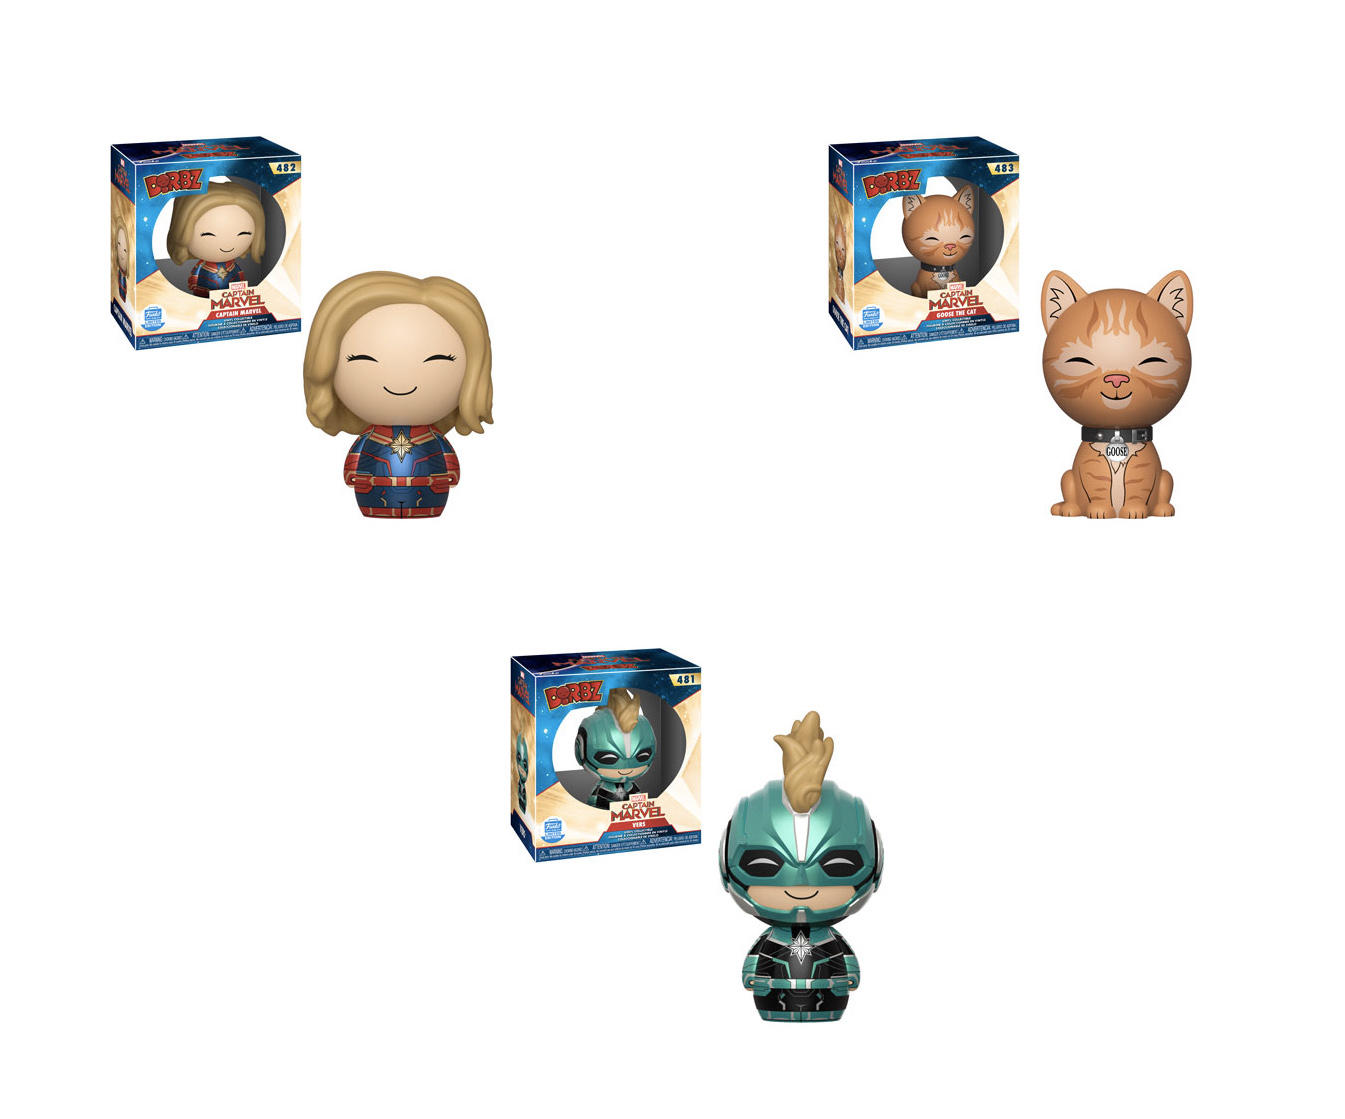 If you're looking for Captain Marvel characters with an adorable edge, Captain Marvel, her beloved pet Goose the Cat, and Vers are available as adorable Dorbz figures available as Funko Shop exclusives.